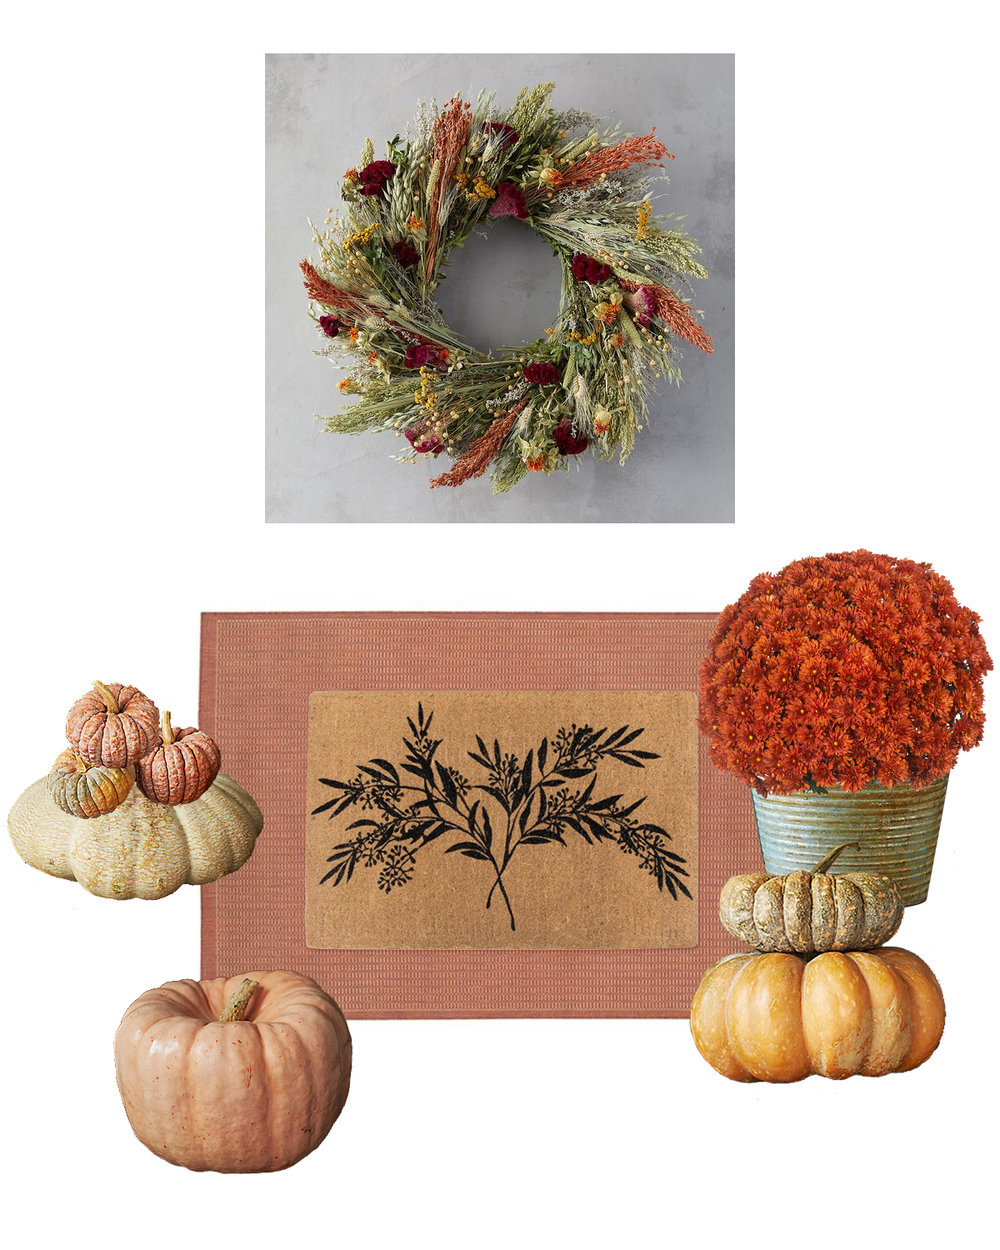 wreath  |  area rug  |  doormat  |  planter  |  mums image  |  pumpkin images